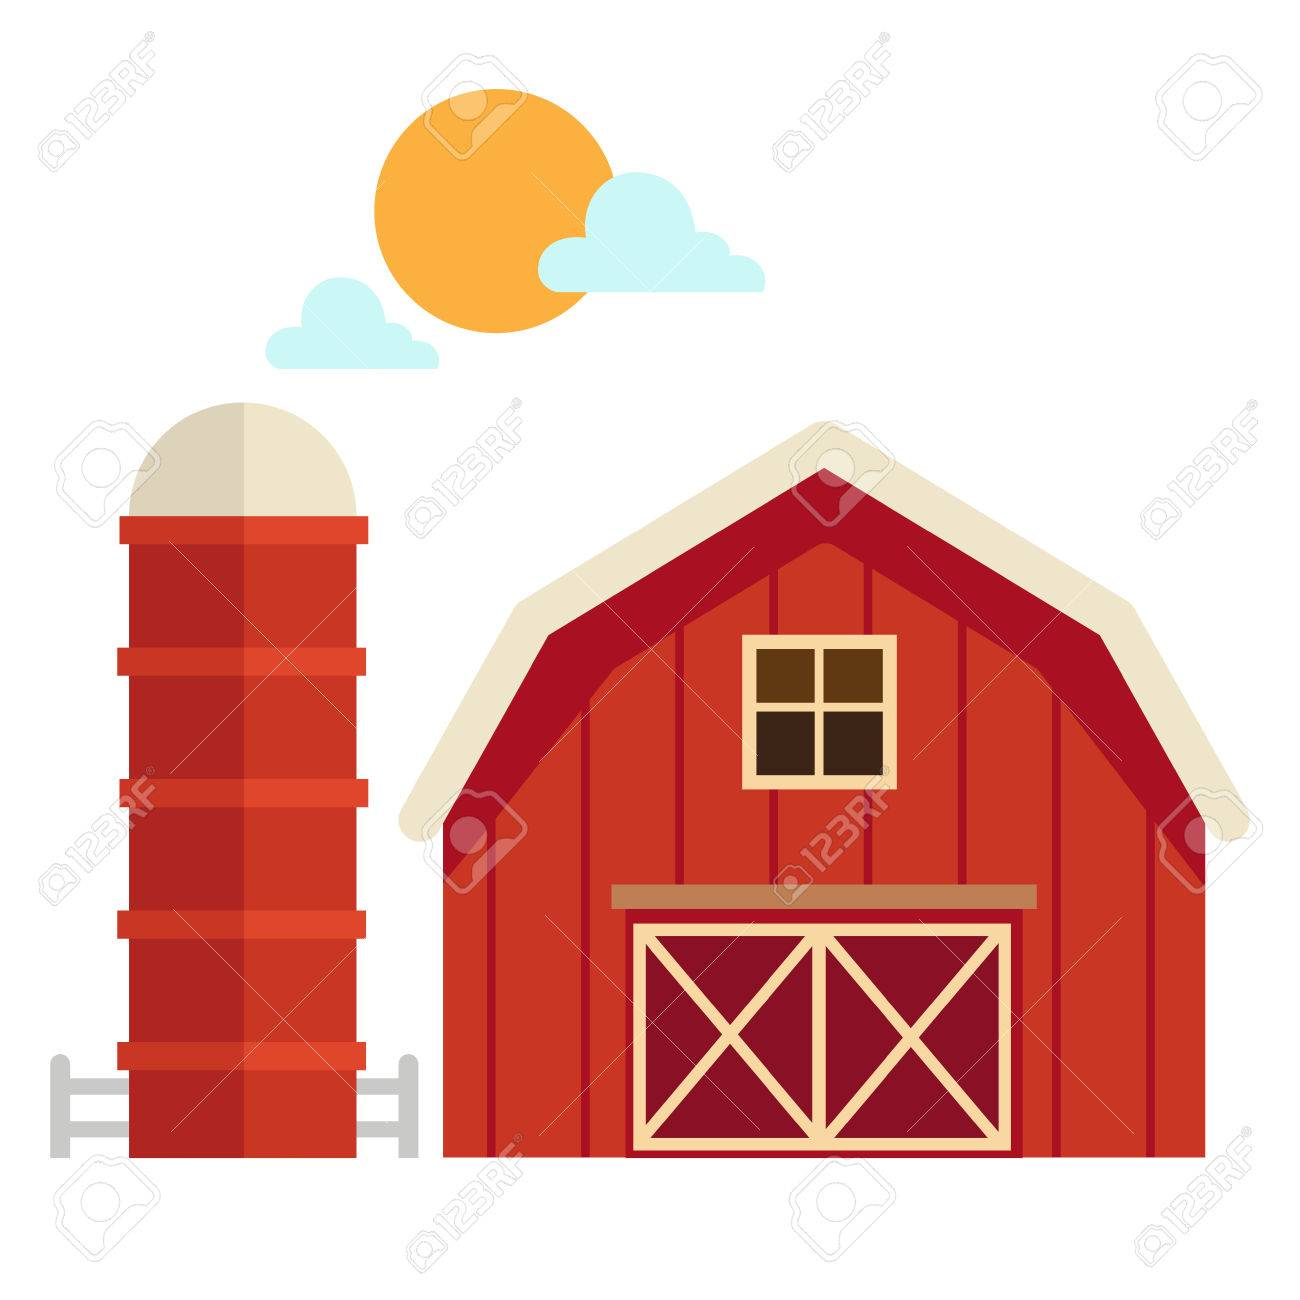 illustration of isolated barn house on white background vector.